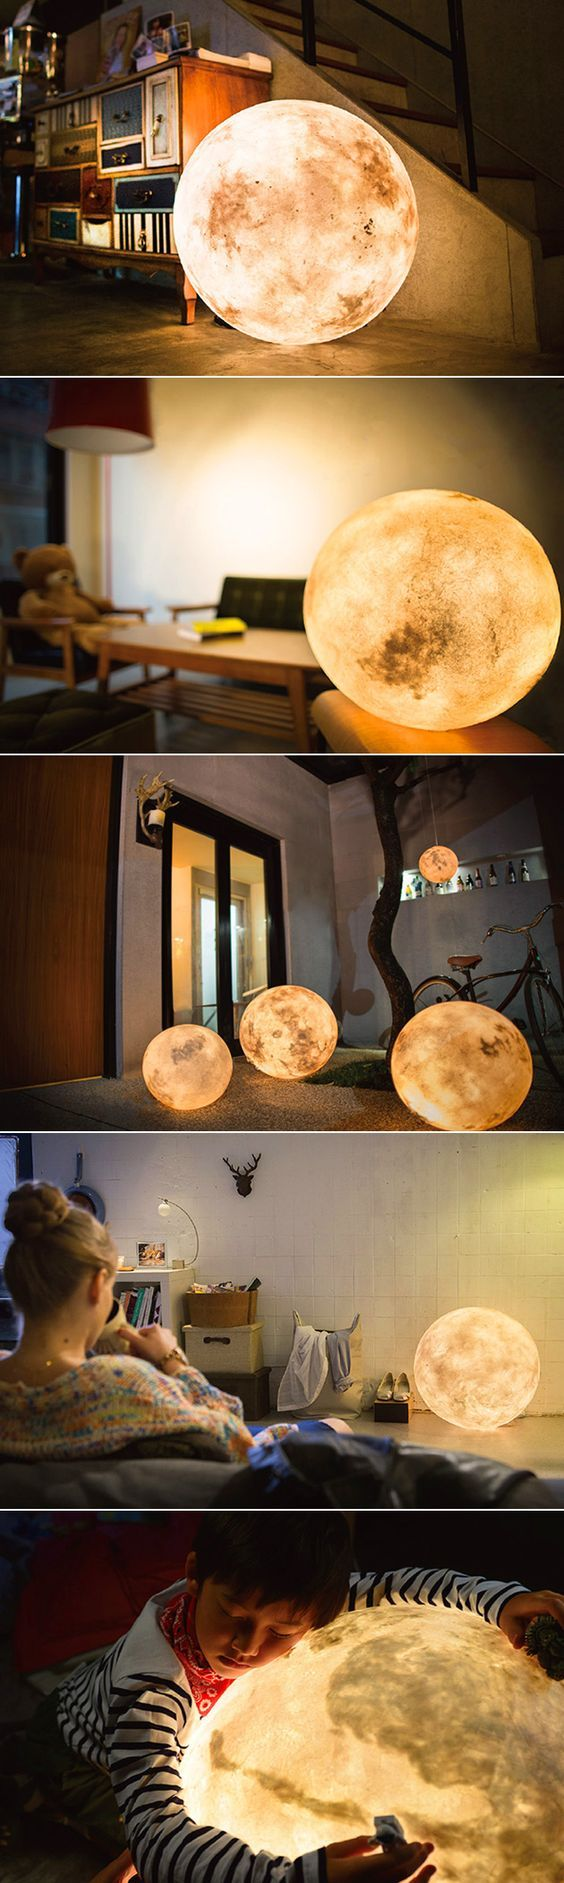 Cuando la luna forma parte de la decoración. #Calux #Tendencia #Iluminación #Innovación #Belleza #Espacios #Diseño #interiores #Decoración  #Contemporáneo #Idea #Frases  #Inspiración #Innovation #Trend #Beauty #Space #Design #Interior #Decoration #Contemporary #Follow #Inspiration #Light #Arquitectura #Architecture #Luz #myhouseidea #interiordesign #interior #interiors #house #home #design #architecture  #decor #homedecor #luxury #decor #love #follow #archilovers #casa #weekend #archdaily